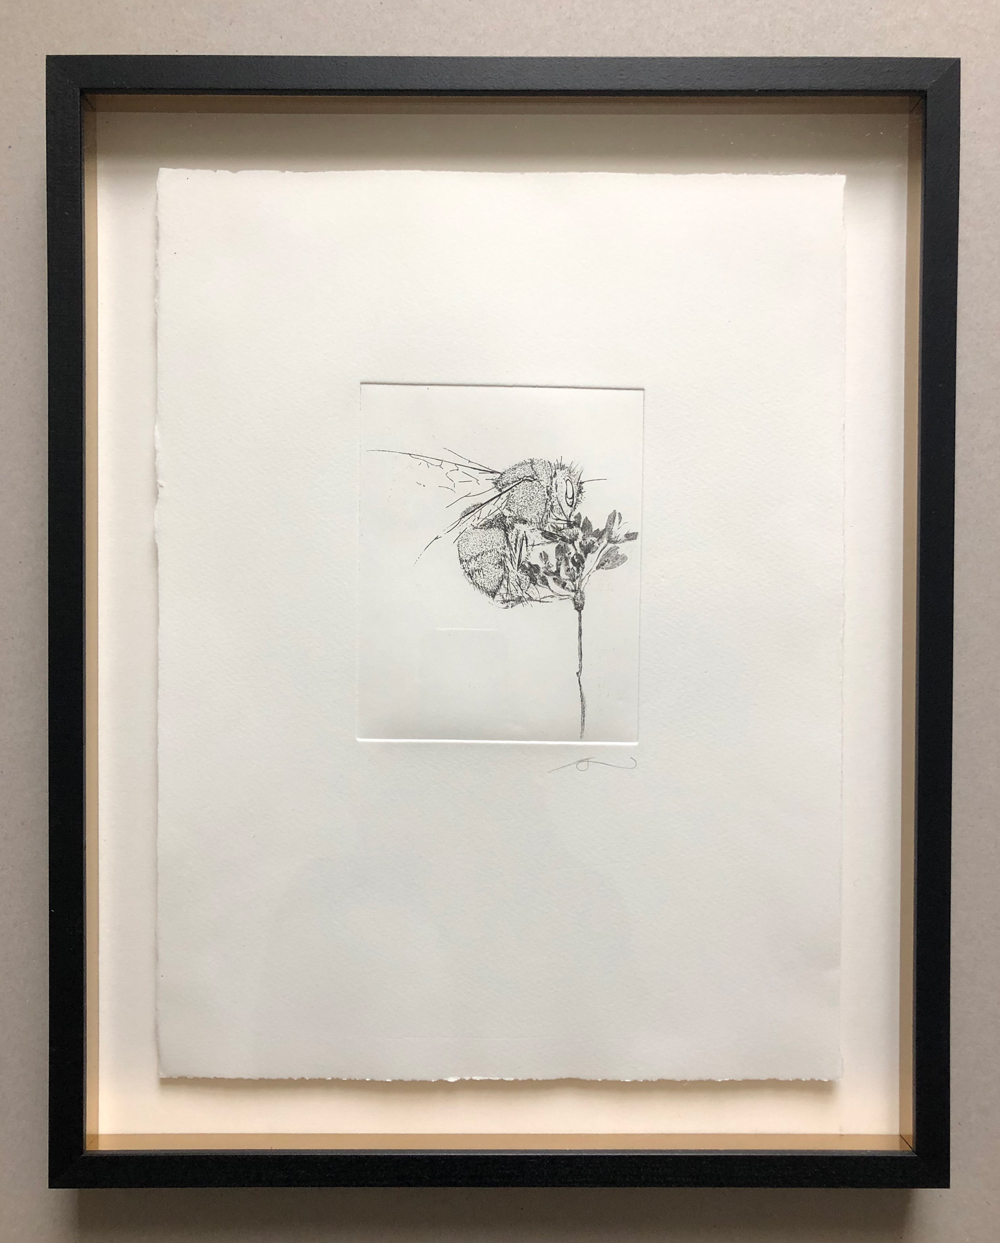 Bee-Etching--Handmade-Etching-in-black-frame-with-gold-fillets-46cm-x-37cm-.jpg